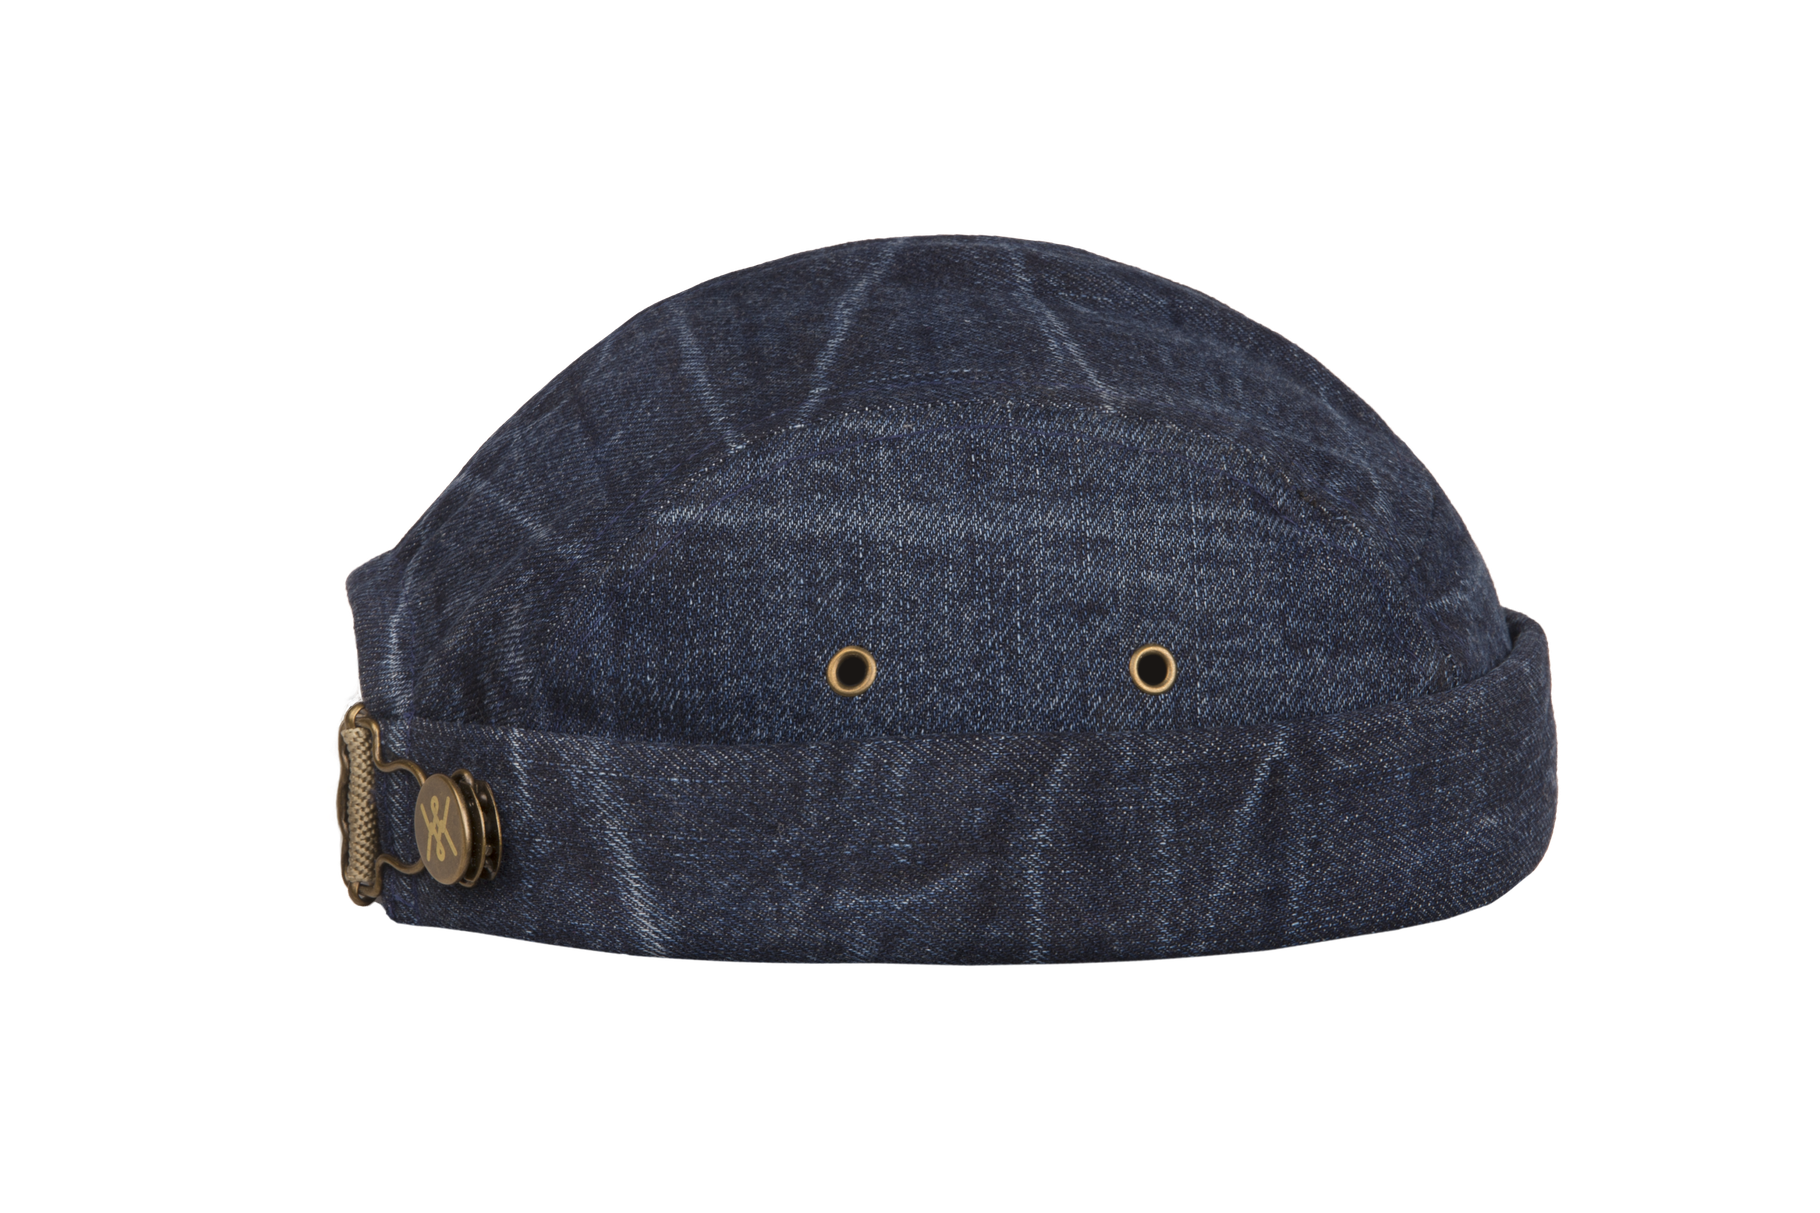 Miki breton bleu jean, modèle limité, 100% coton, Miaraka, réglable, adaptable, unisexe, uniforme, 5 panel, authentique, vintage, éthique, docker miki, worker hat, textile, denim, résistant, miki uni jean, fait à la main, made in France, must have, incontournable, tendance, couvre chef, accessoire iconique, chapellerie unique, fashion, streetwear, casual, miki addict, sneaker addict, collection, haut de gamme, environnement, marins, résistant, surecyclage, bonnet, modèle de créateur déposé